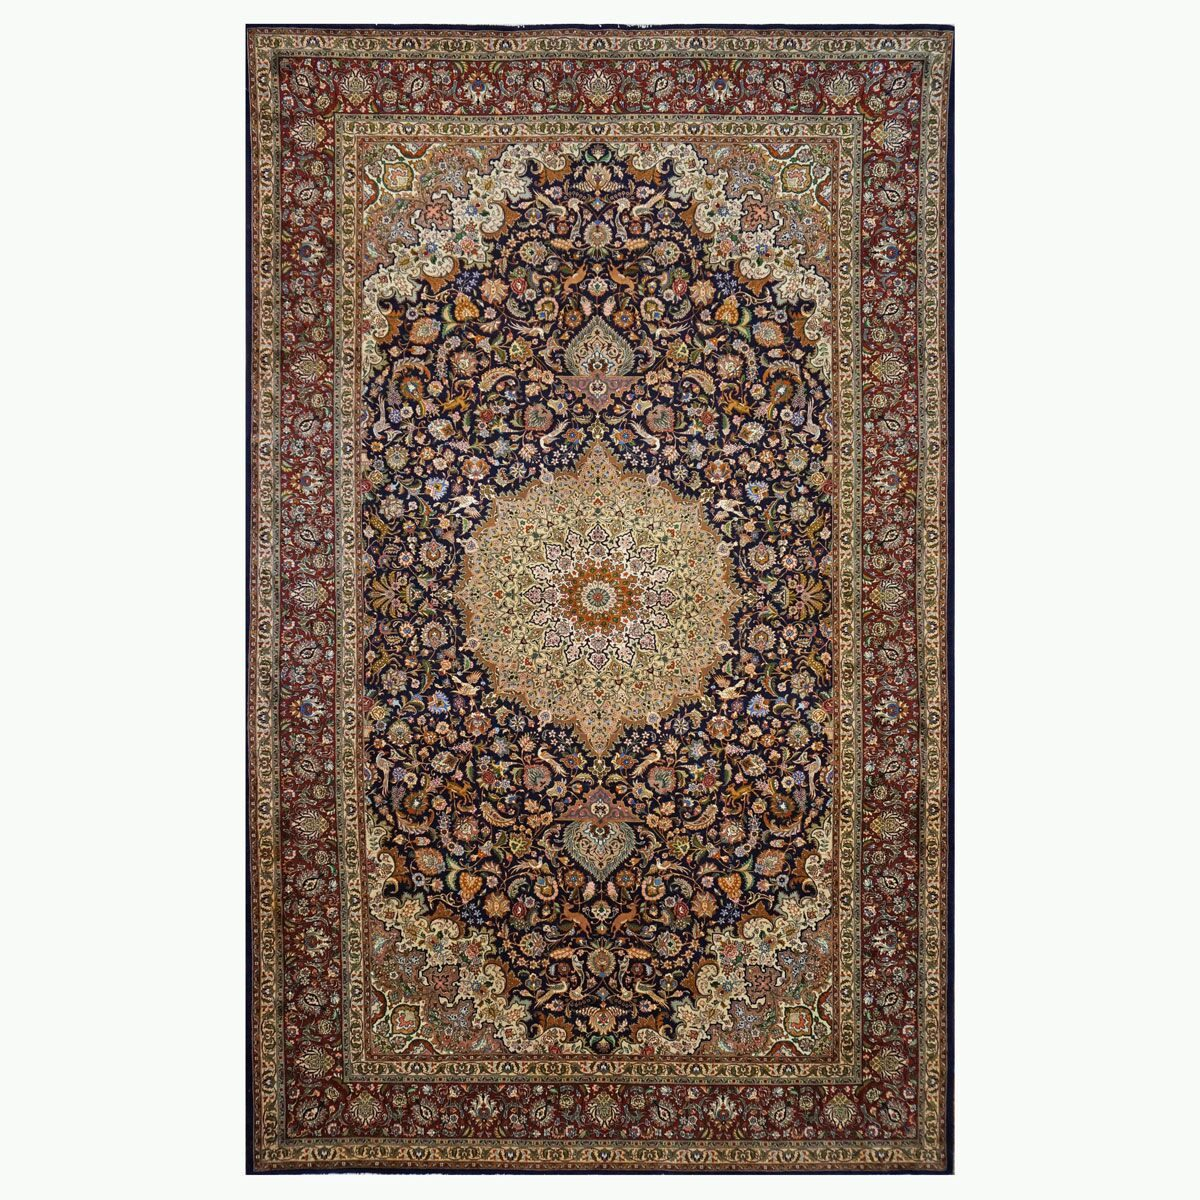 1143508 10 x 14 Antique Tabriz Wool Red by Ashly Fine Rugs